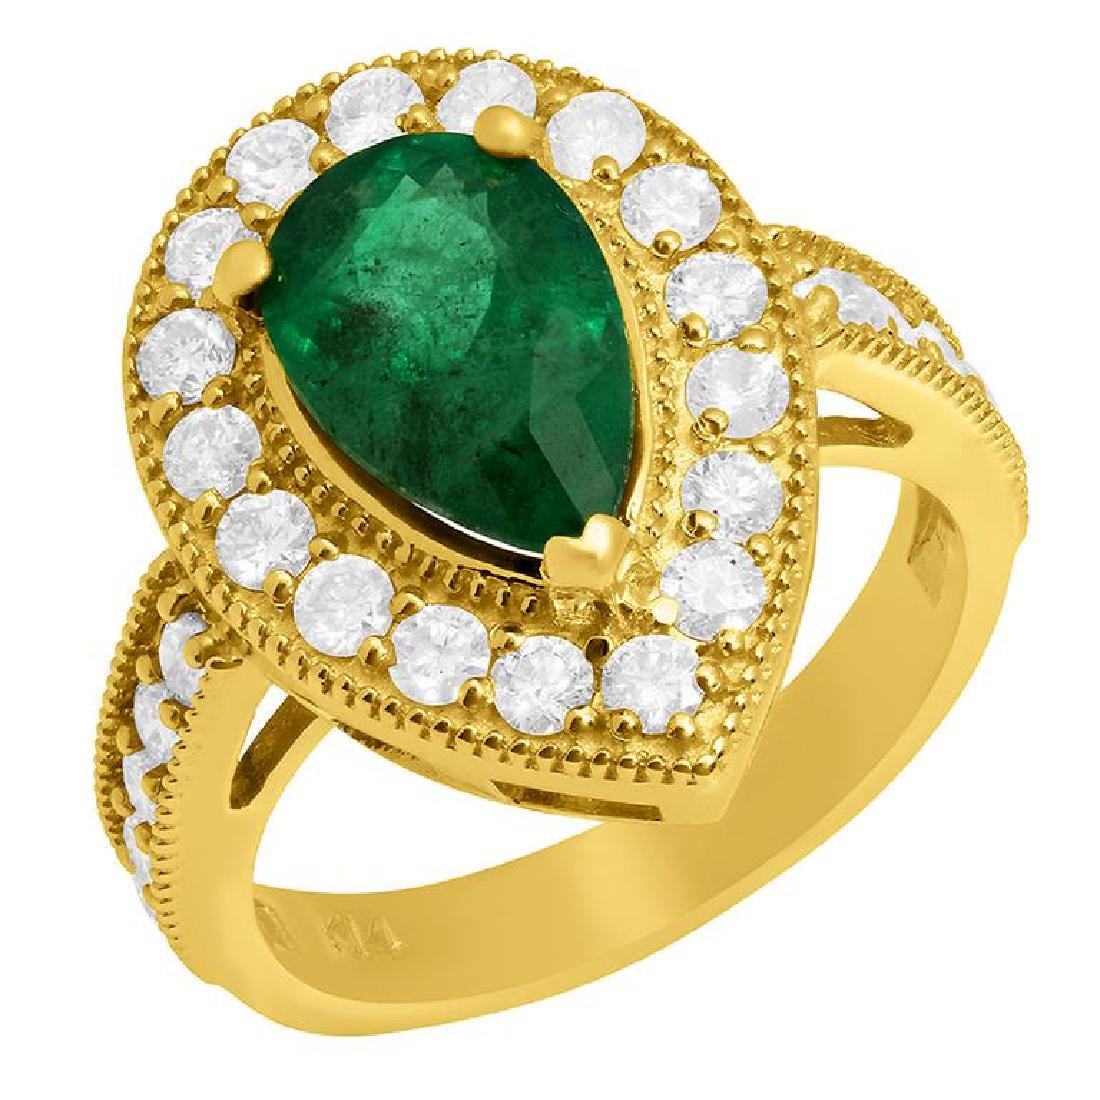 14k Yellow Gold 2.19 Emerald 1.23ct Diamond Ring